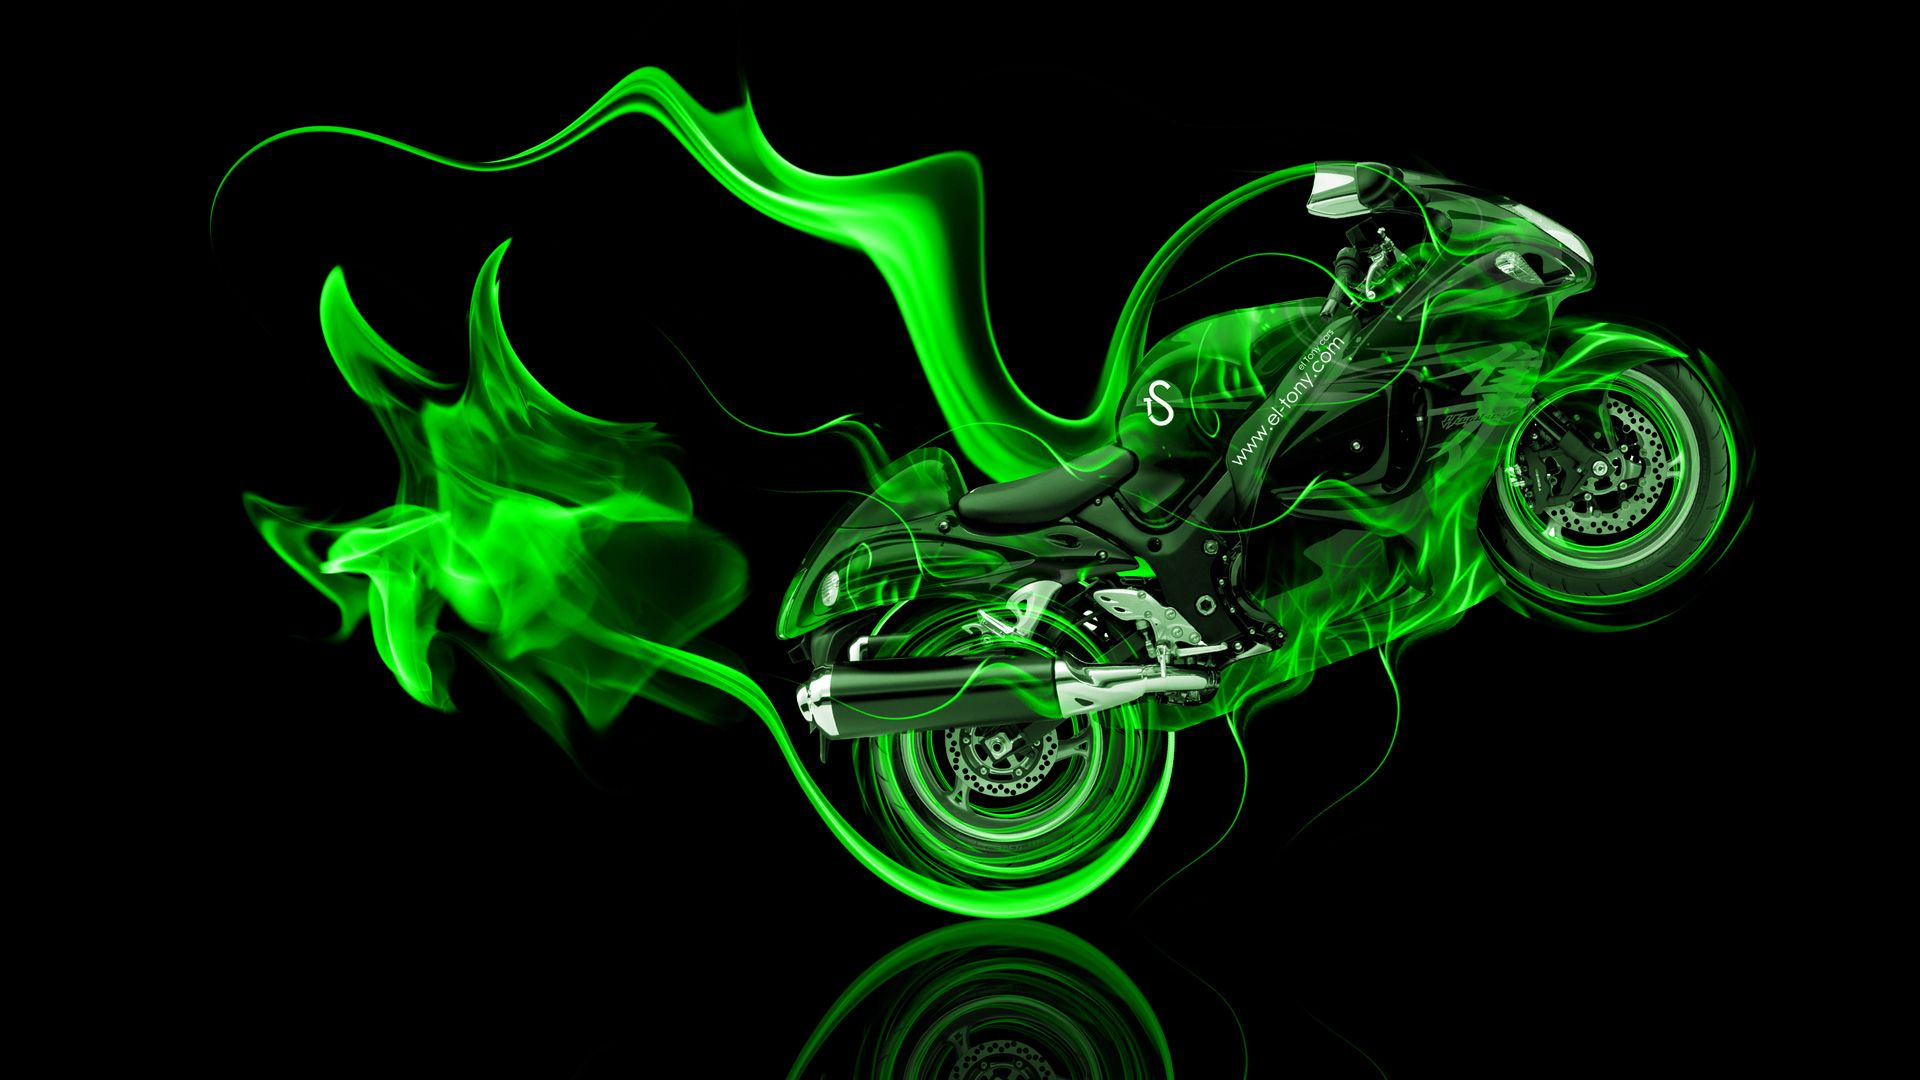 Beau Http://www.el Tony.com/wp Content/uploads/2014/09/Moto Suzuki Hayabusa Side  Super Green Fire Abstract Bike 2014 Art HD Wallpapers Design By Tony Kou2026